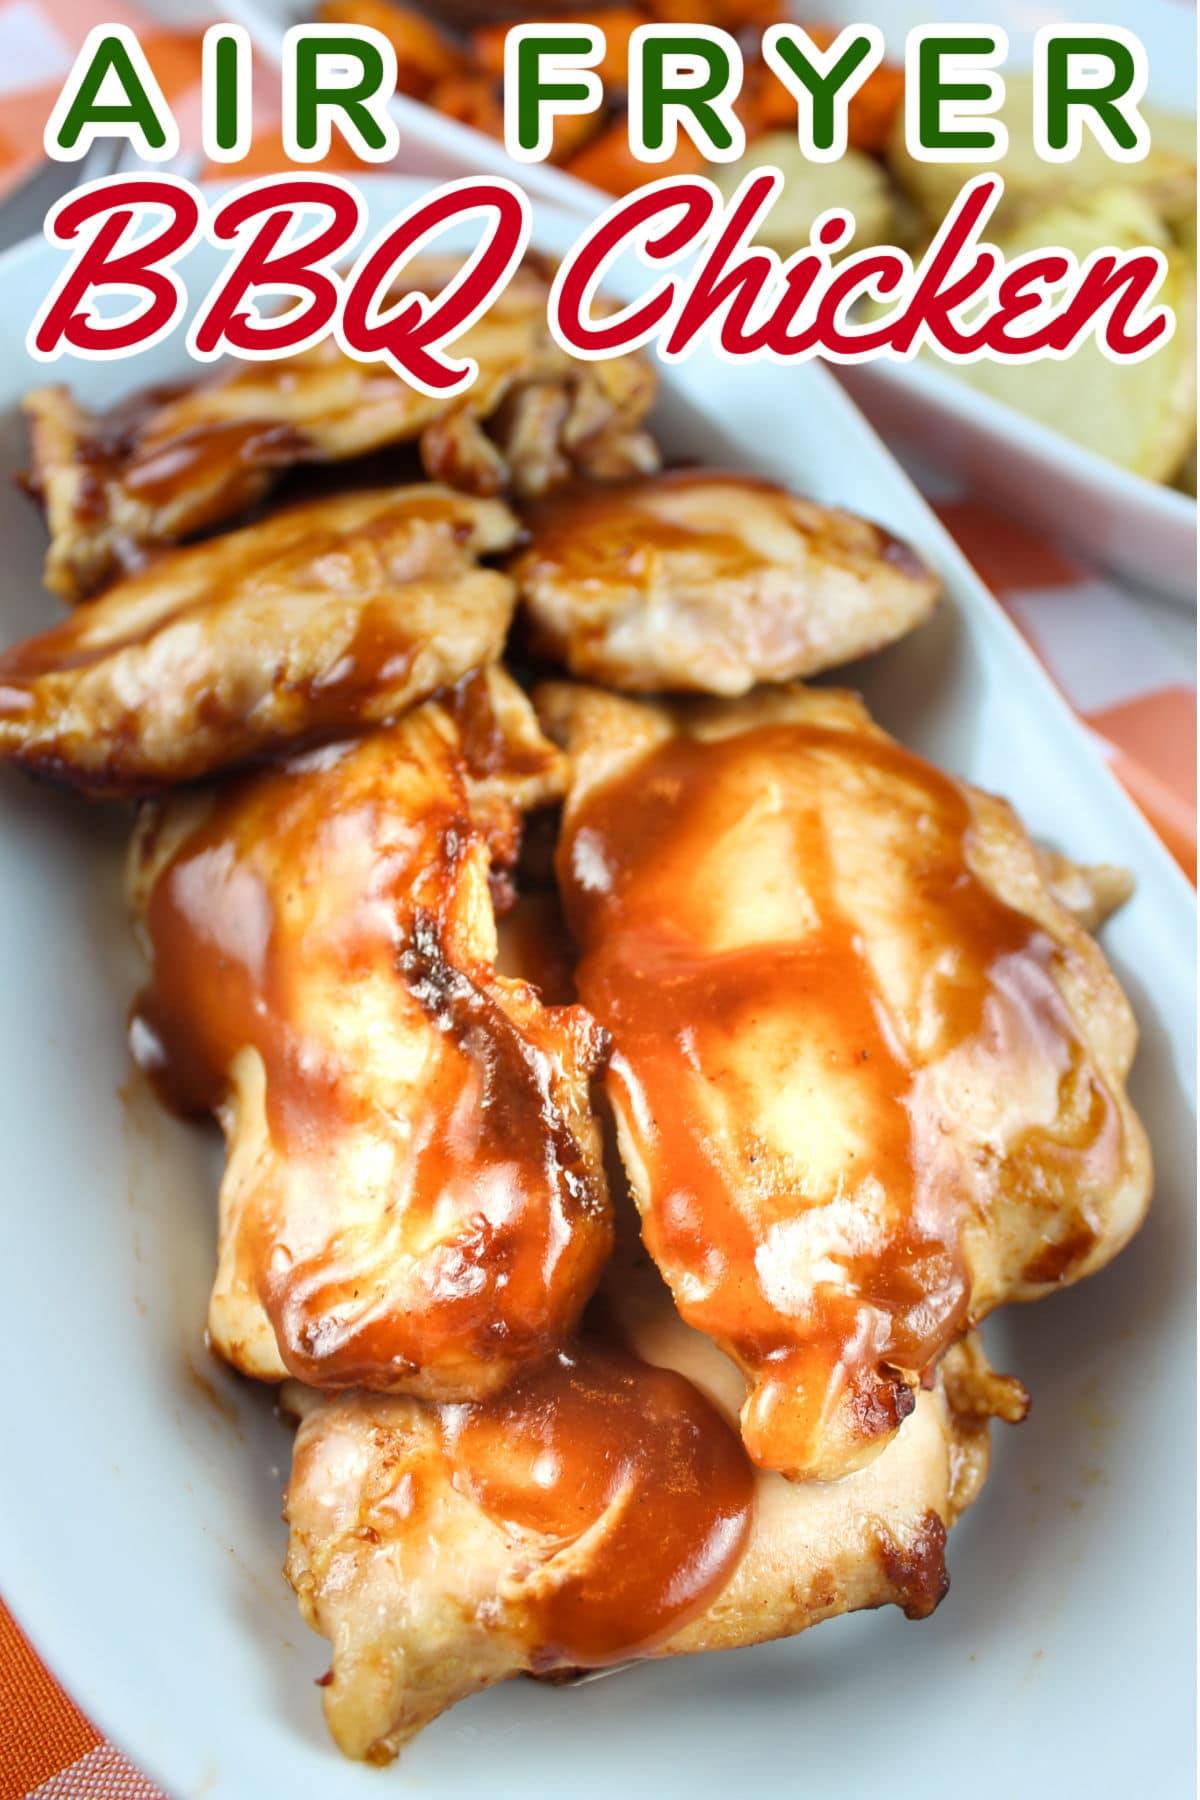 Air Fryer BBQ Chicken Thighs are a new staple for me! I always love chicken thighs because they're so juicy - and this is so simple. Add a little bbq sauce (sugar free if you're on Weight Watchers like me) and 10 minutes later - you're eating dinner!  via @foodhussy